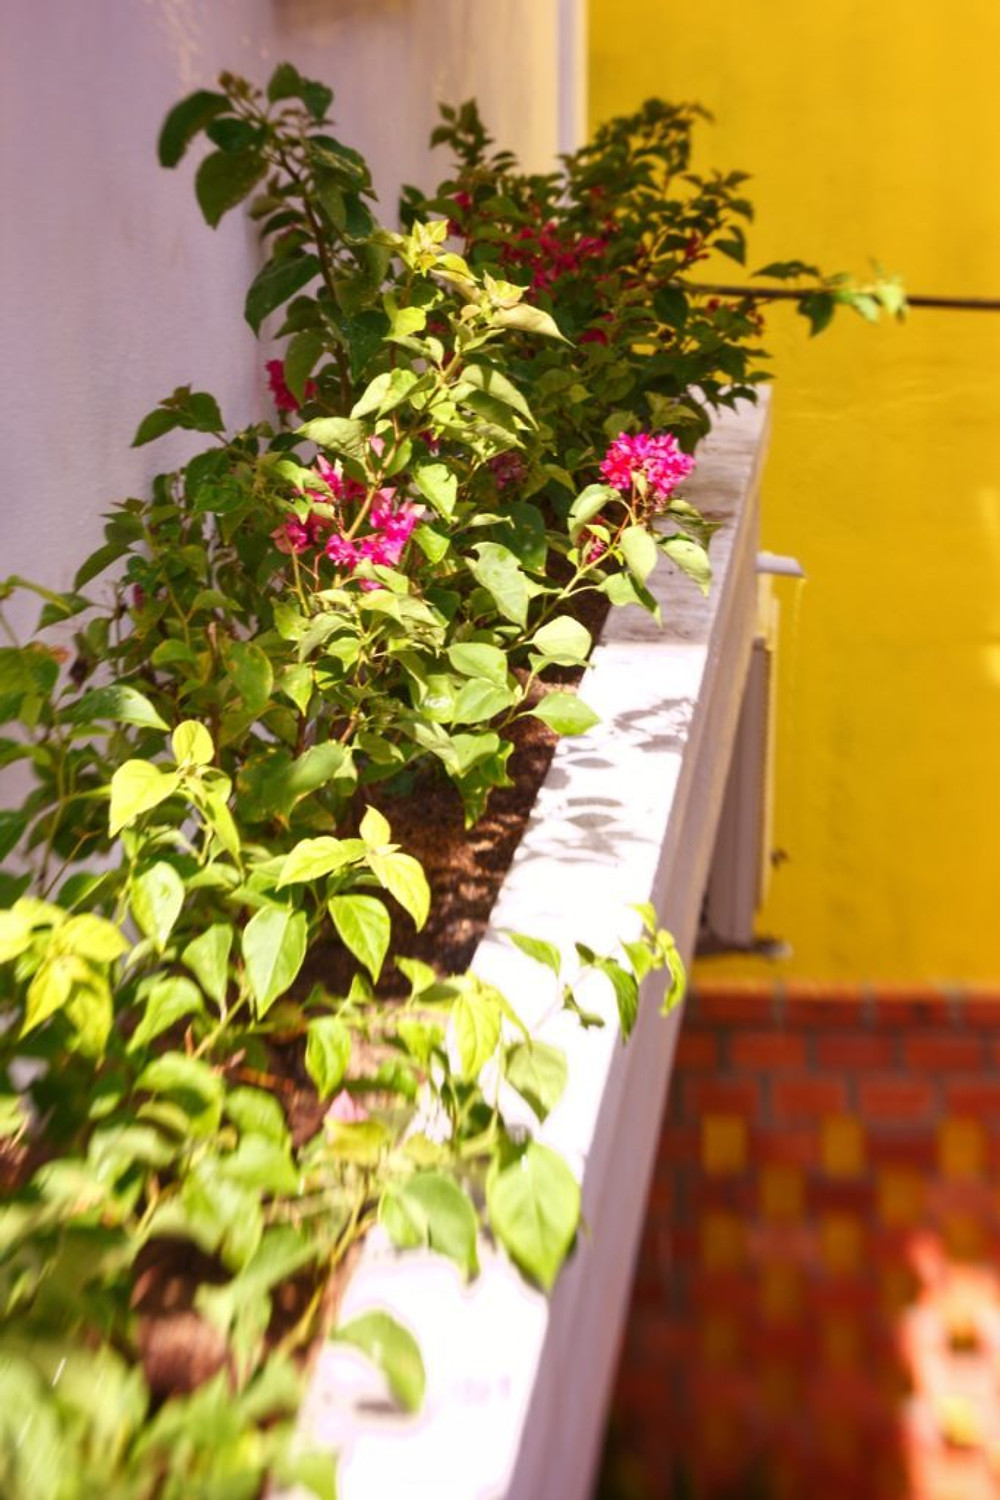 The bougainvillea flower box and sunshine wall at the Gratitude Vietnam Retreat Center